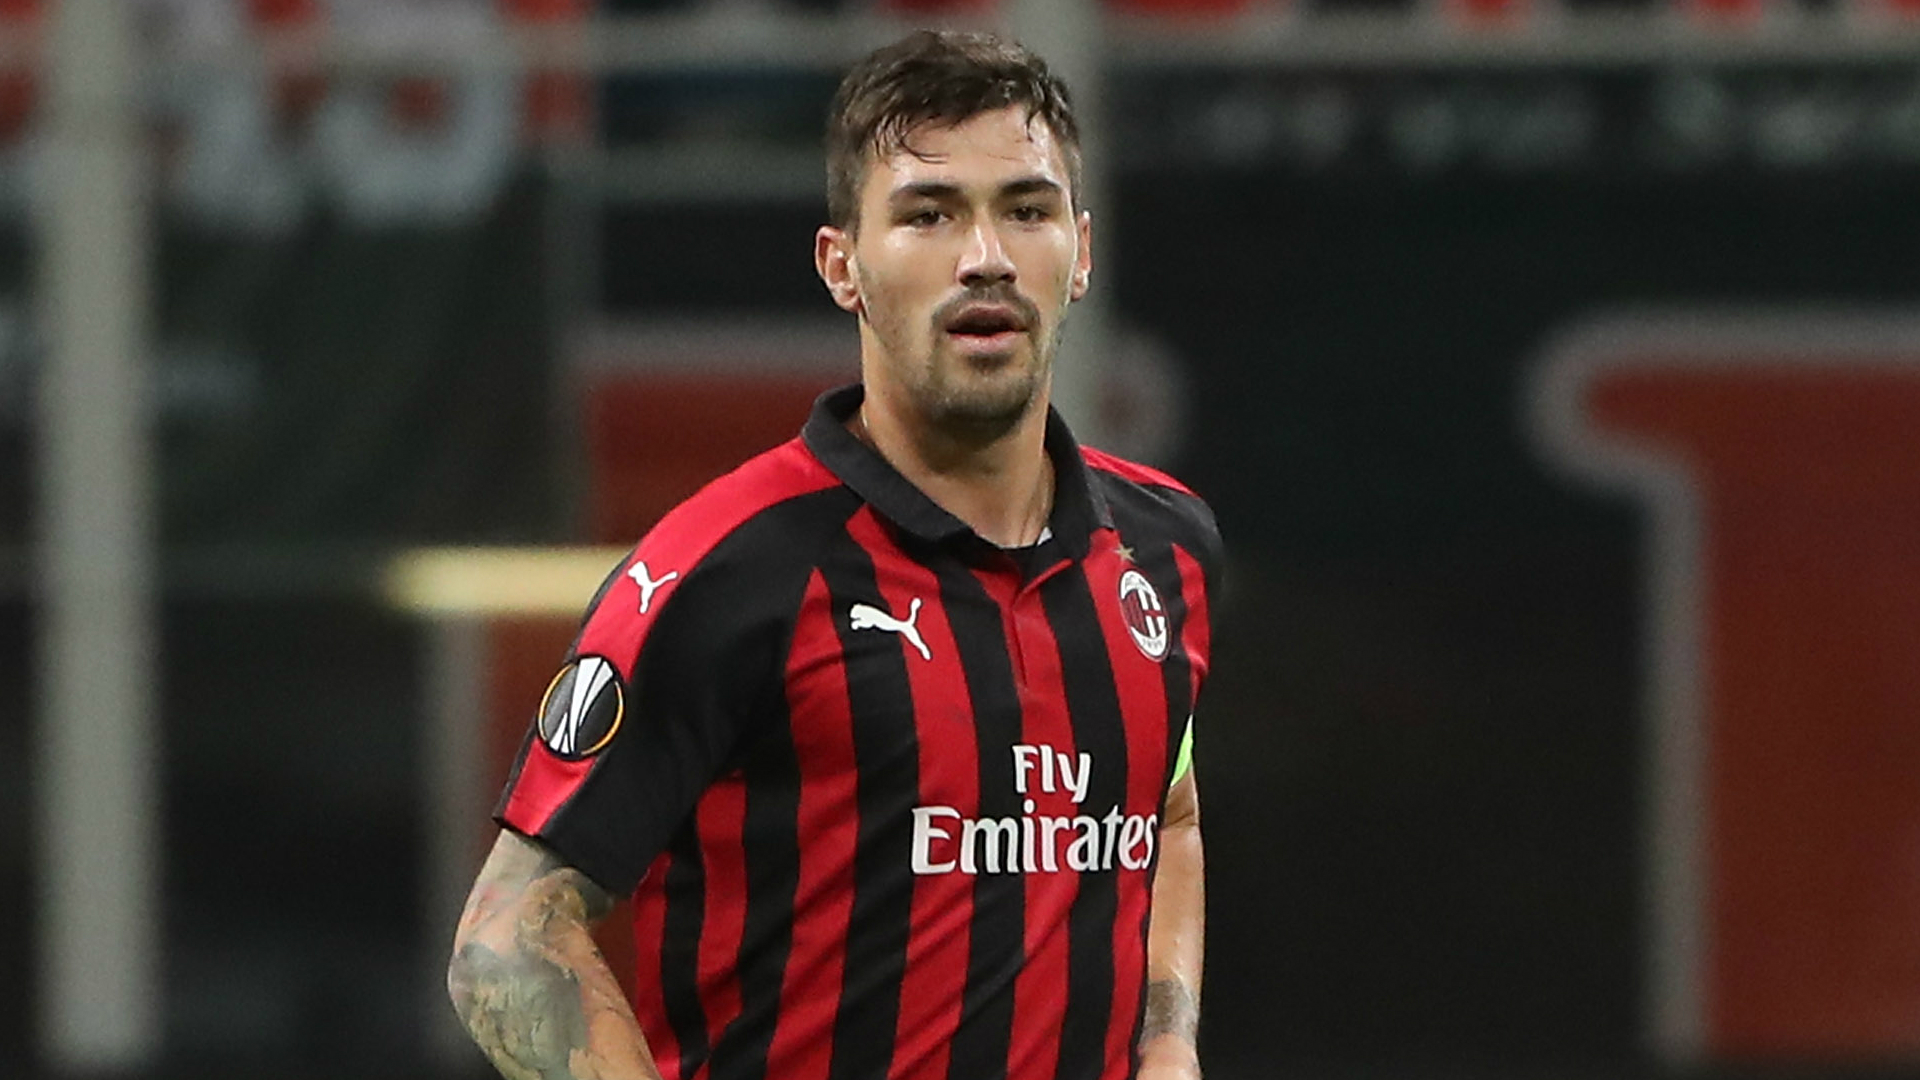 Romagnoli out to make Gattuso proud